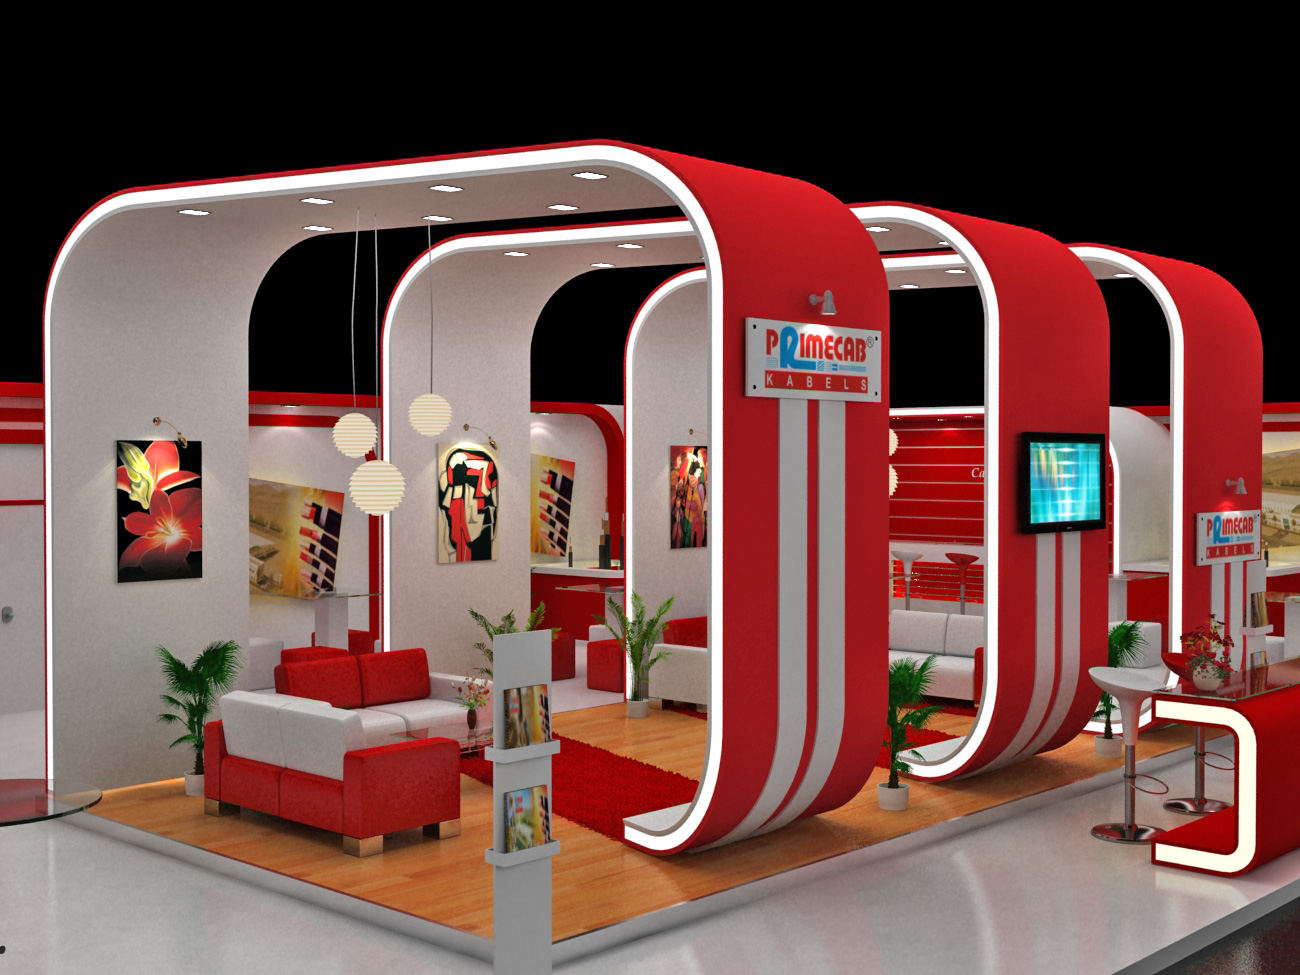 Exhibition Stall Design Ideas : Exhibition stall designs by dnyansagar sapkale at coroflot